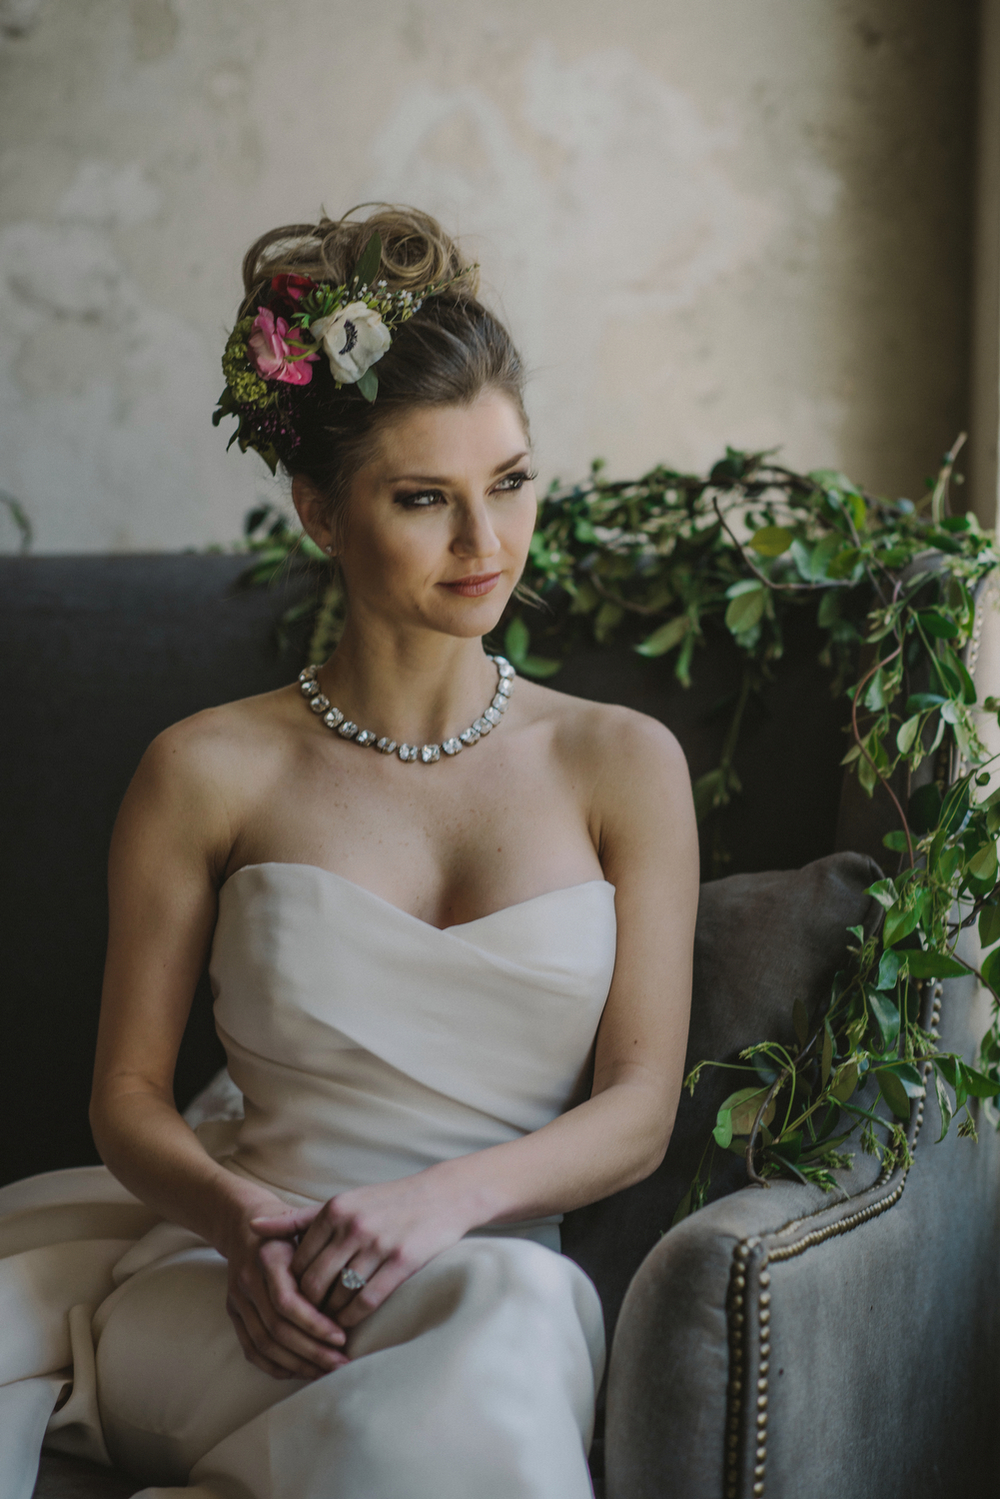 Hair Piece & Garland Bride- Maxit Flowers- Houston Events